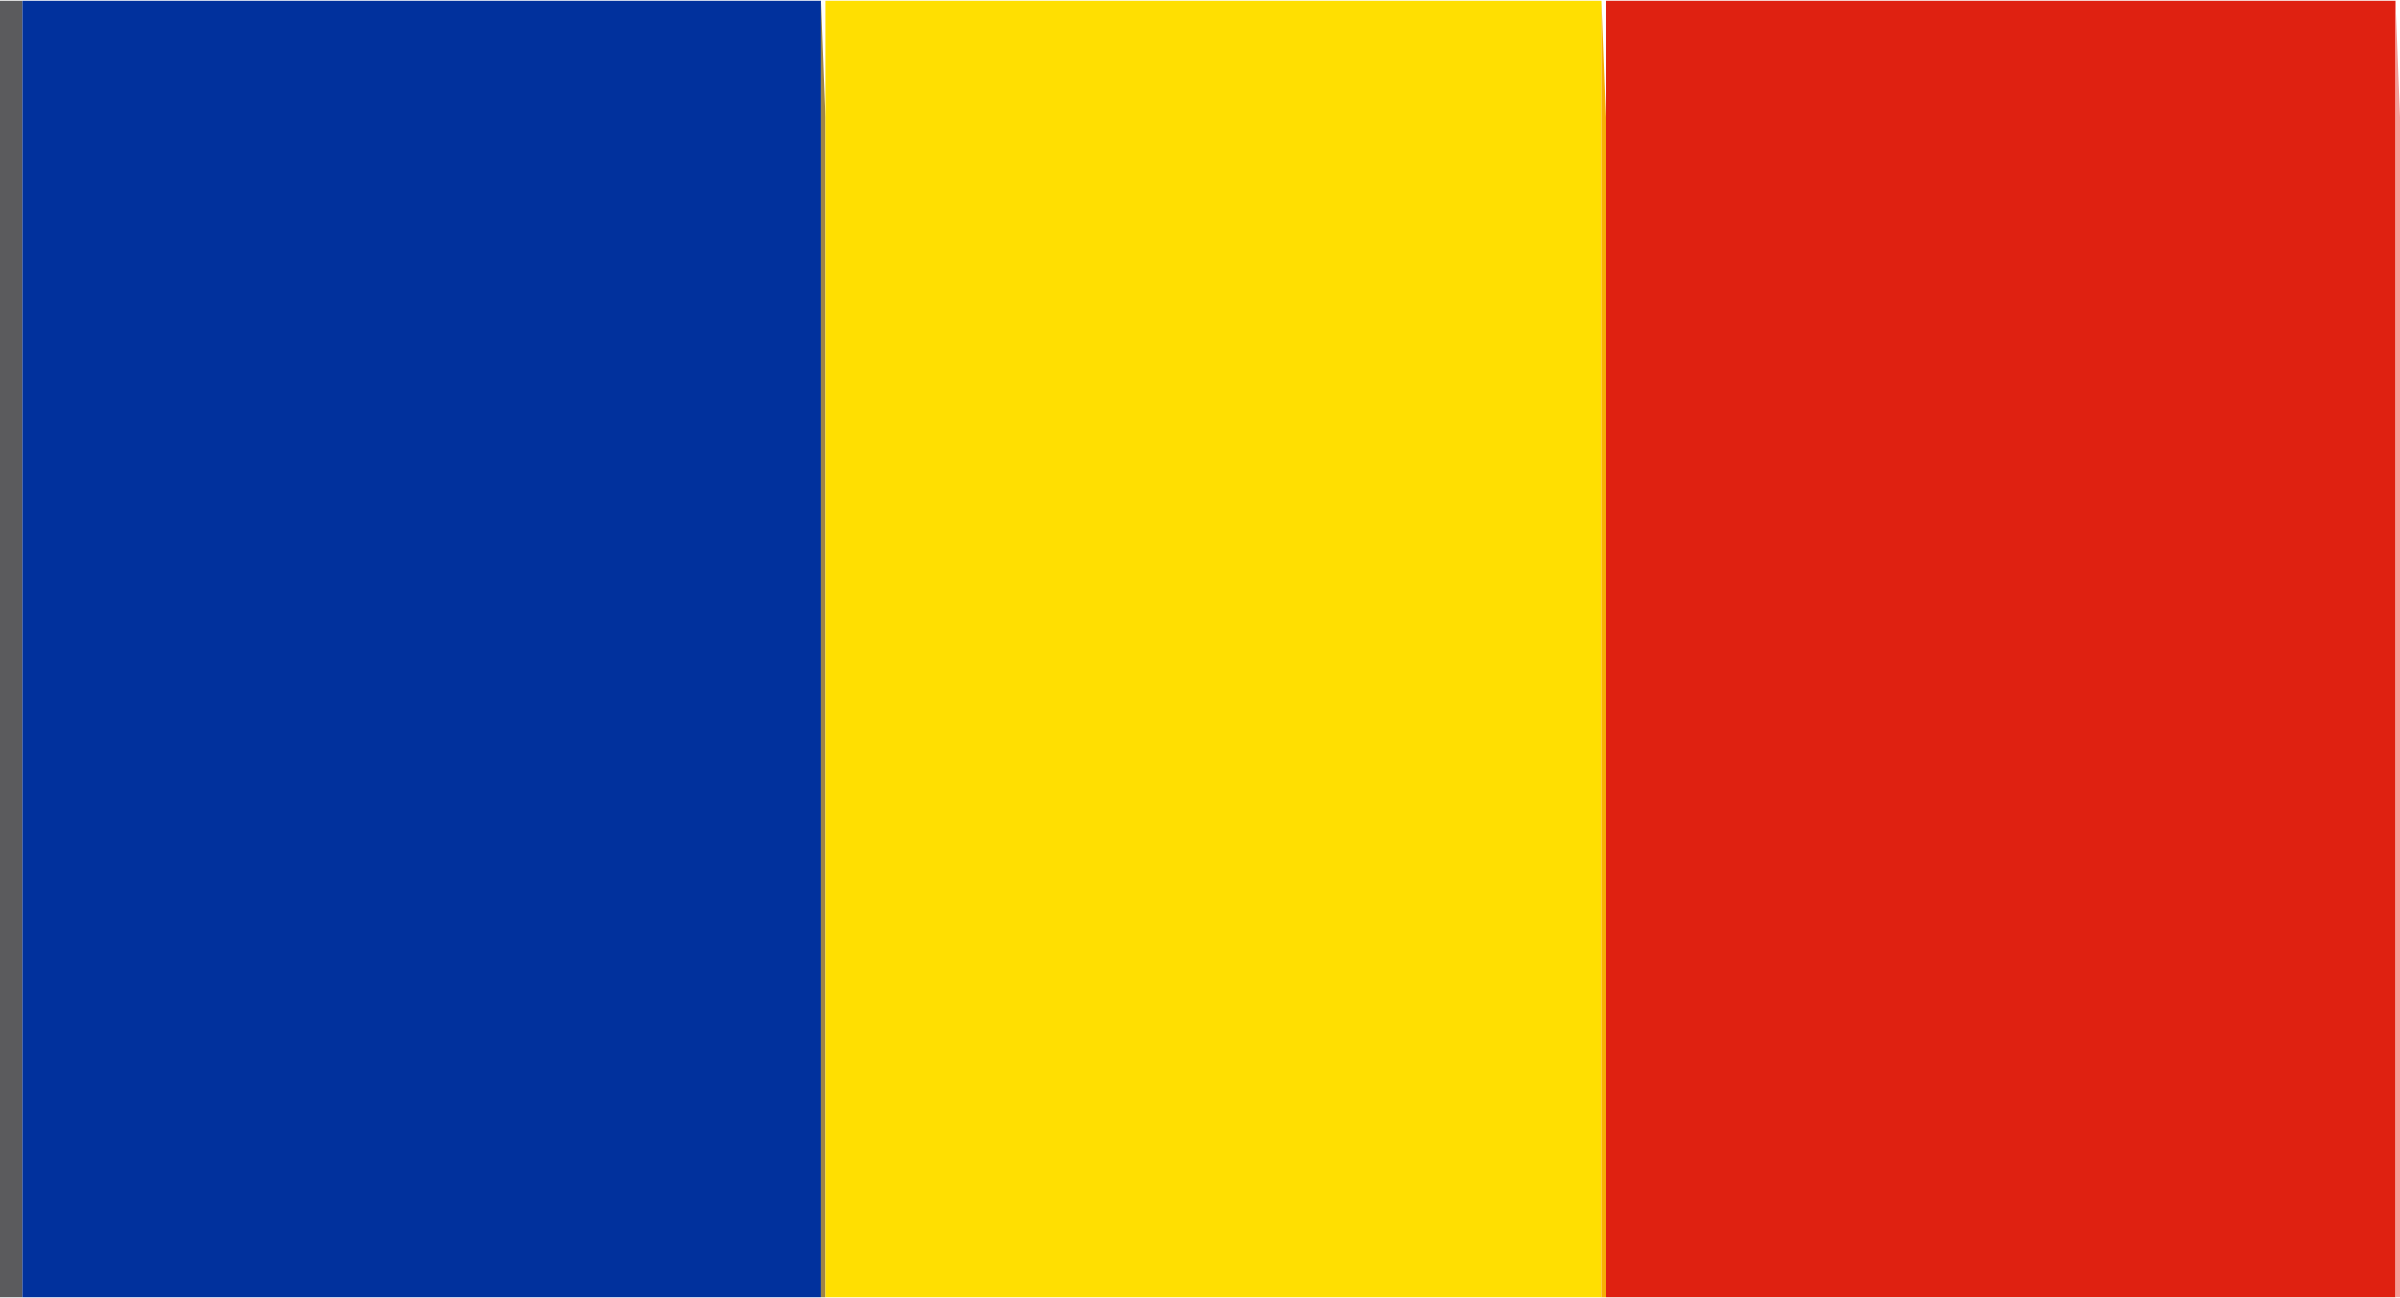 Flag of Romania by Joesph